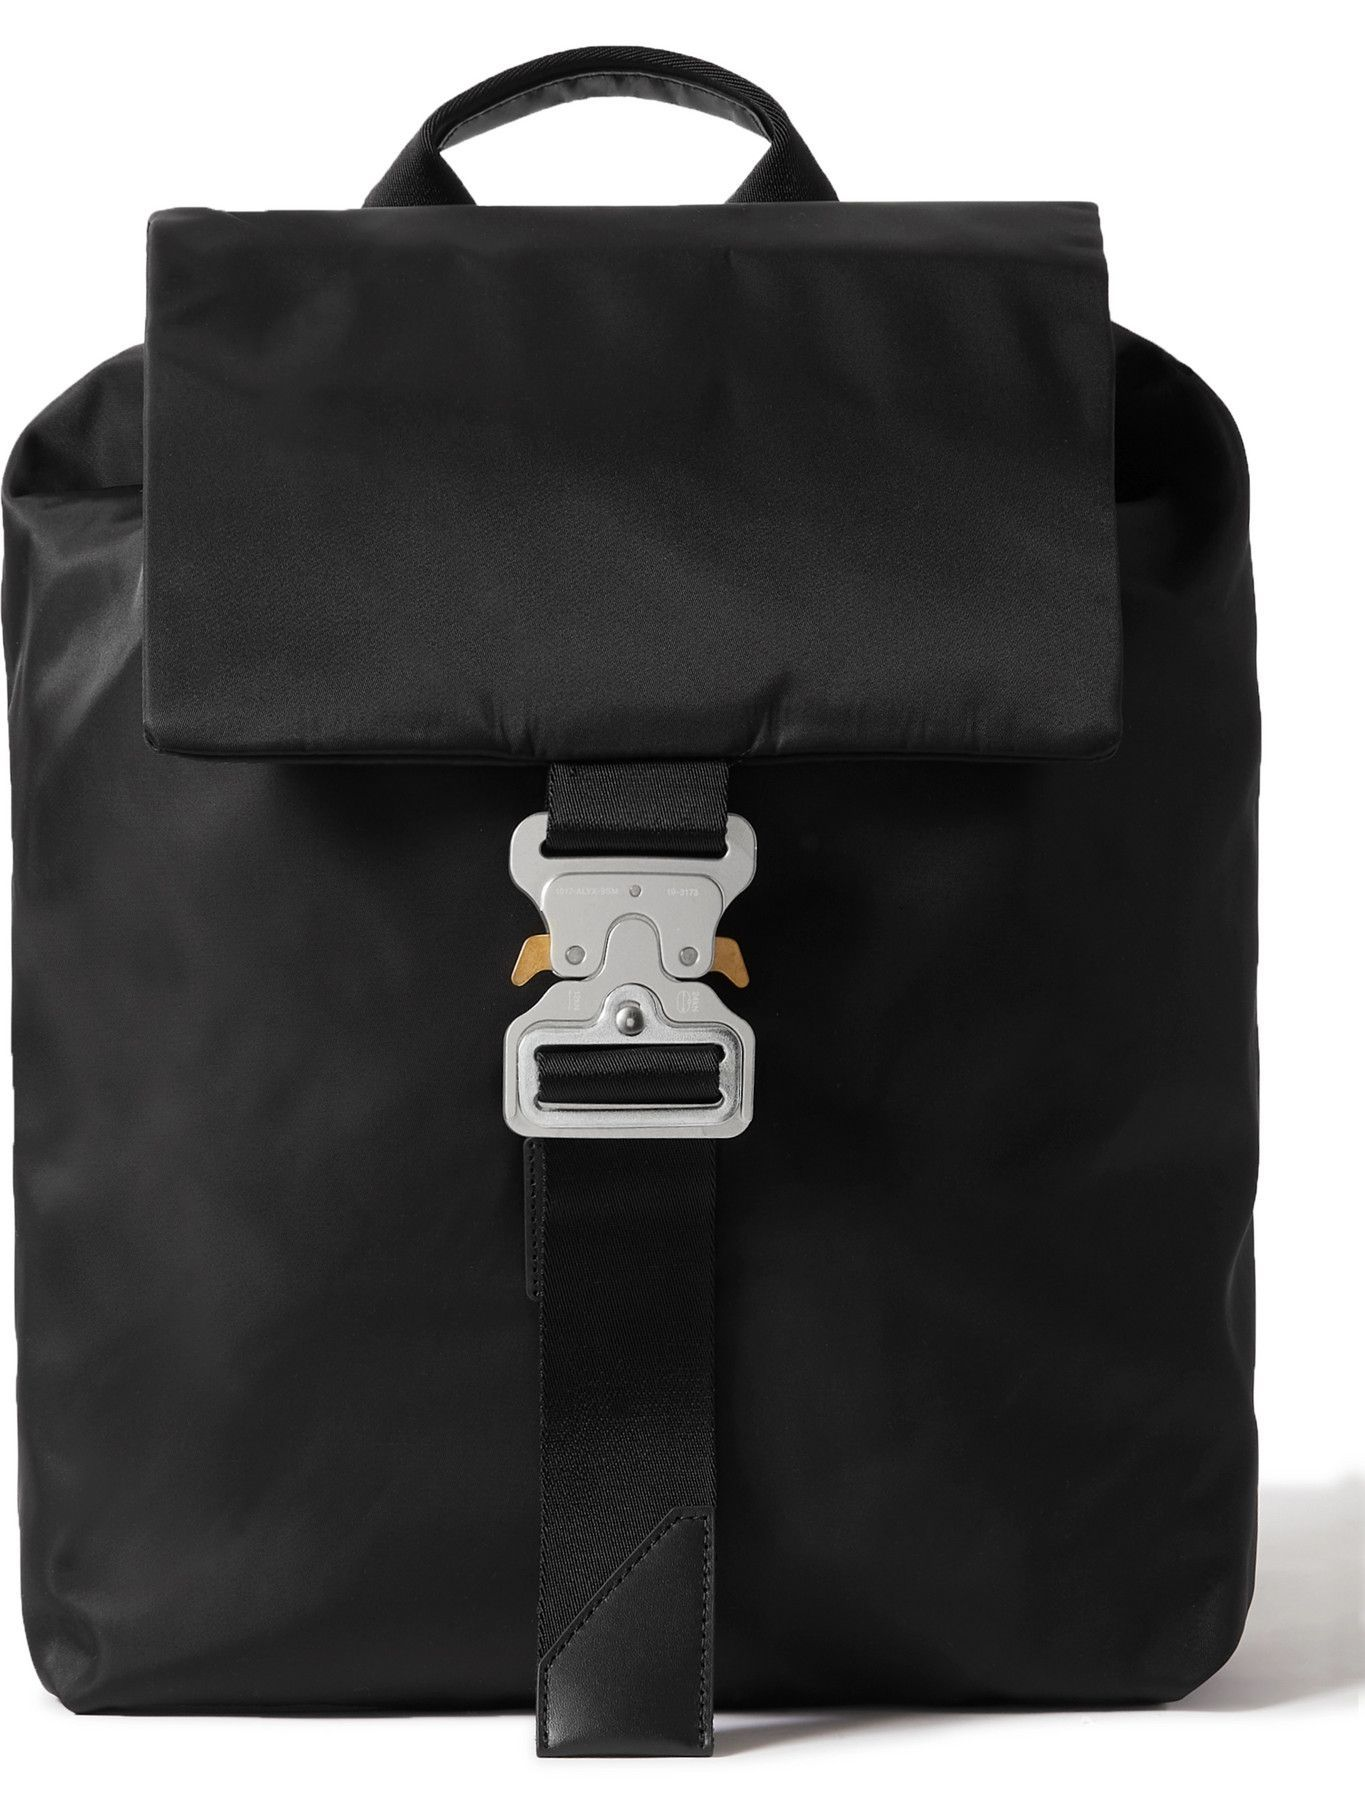 1017 ALYX 9SM - Leather-Trimmed Nylon Backpack